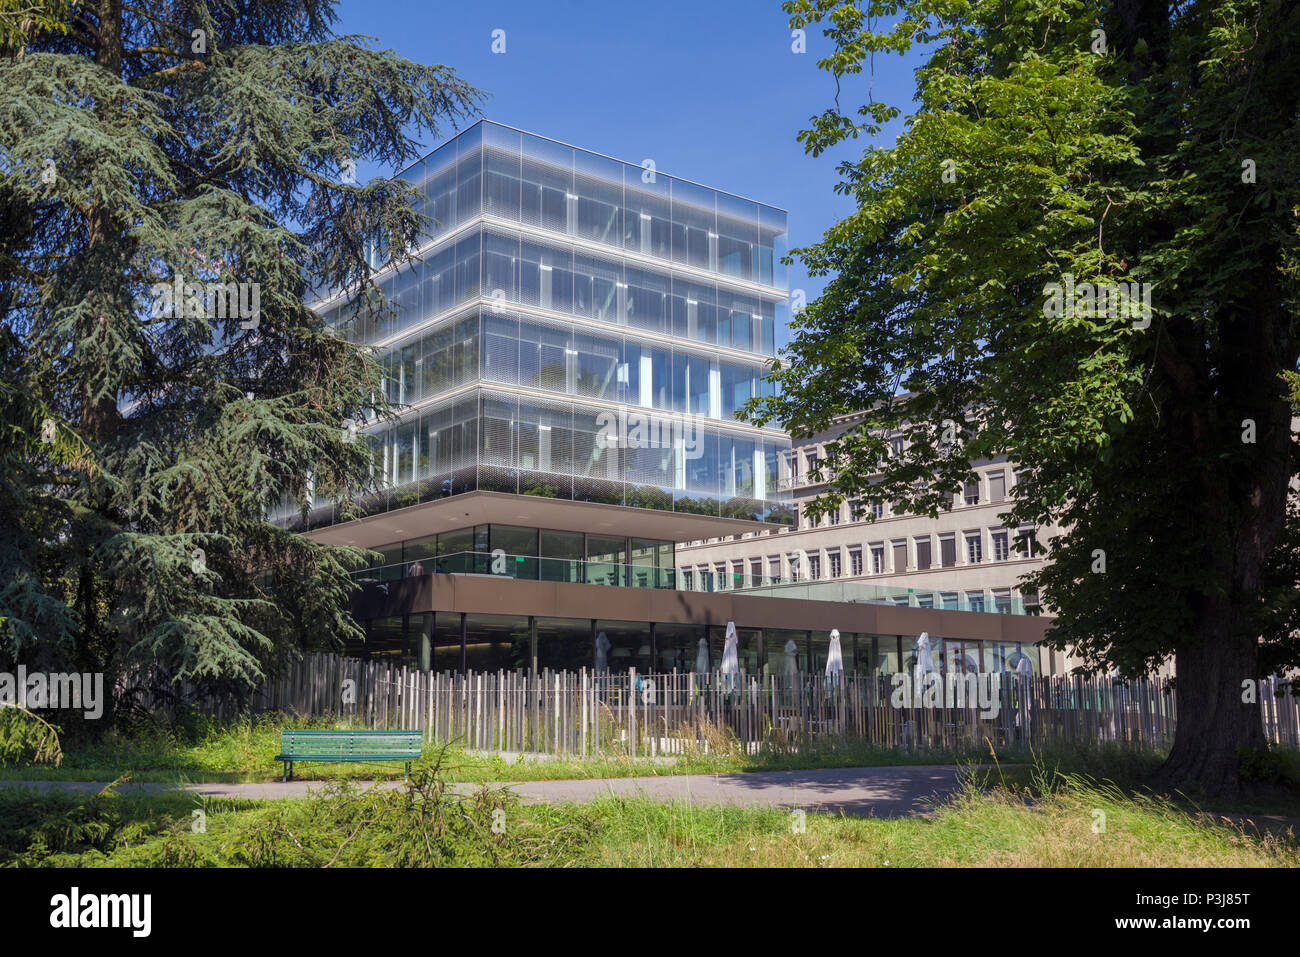 Geneva, Switzerland - june 10, 2018 : The new and the old building of the World Trade Organization (WTO) Stock Photo